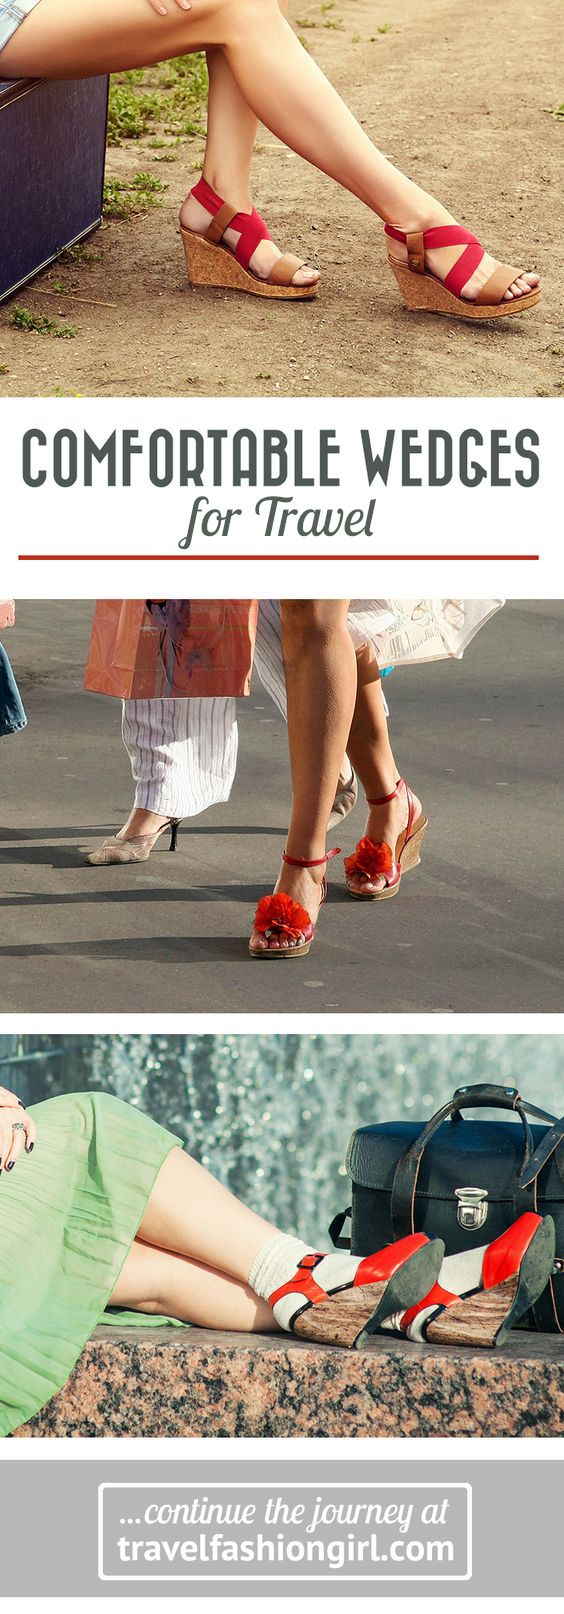 One of our readers asked us for the most comfortable wedges for travel so we turned to the experts: you! Find out the top ten wedges you recommended! http://travelfashiongirl.com/10-of-the-most-comfortable-wedges-for-travel-leave-the-heels-at-home/ via @travlfashngirl #packing #tips #travel